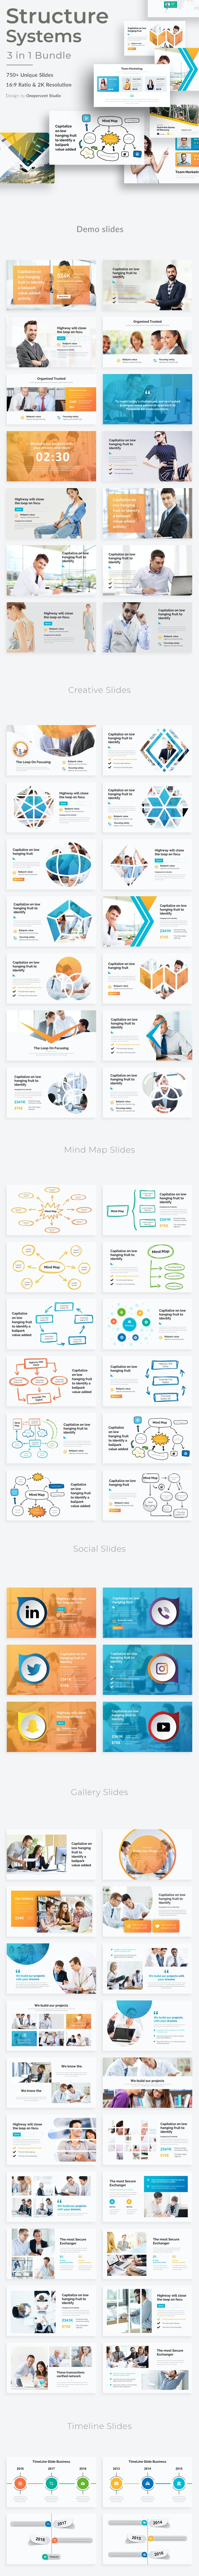 Structure System 3 in 1 Pitch Deck Bundle Keynote Template - Business Keynote Templates